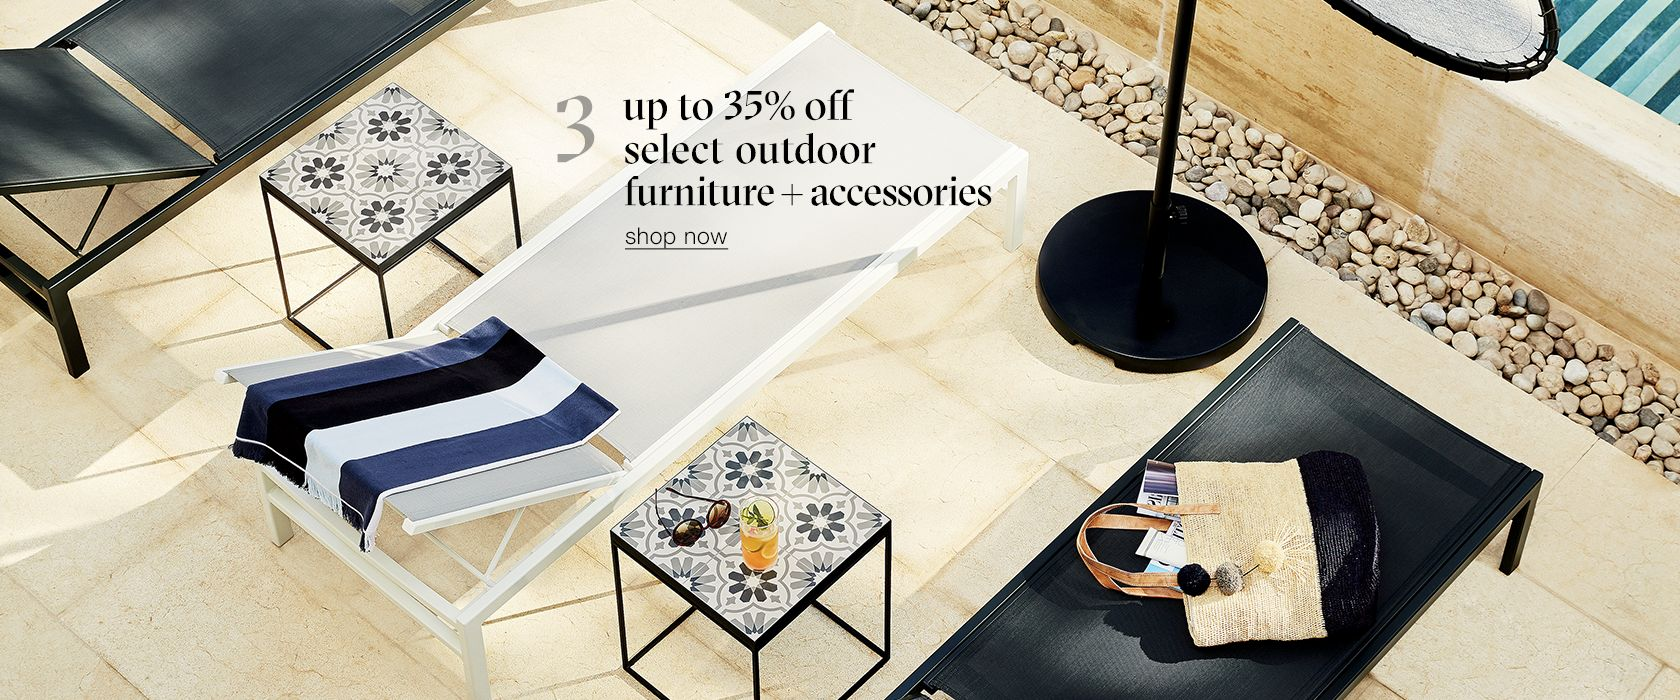 up to 35% off select outdoor furniture and accessories